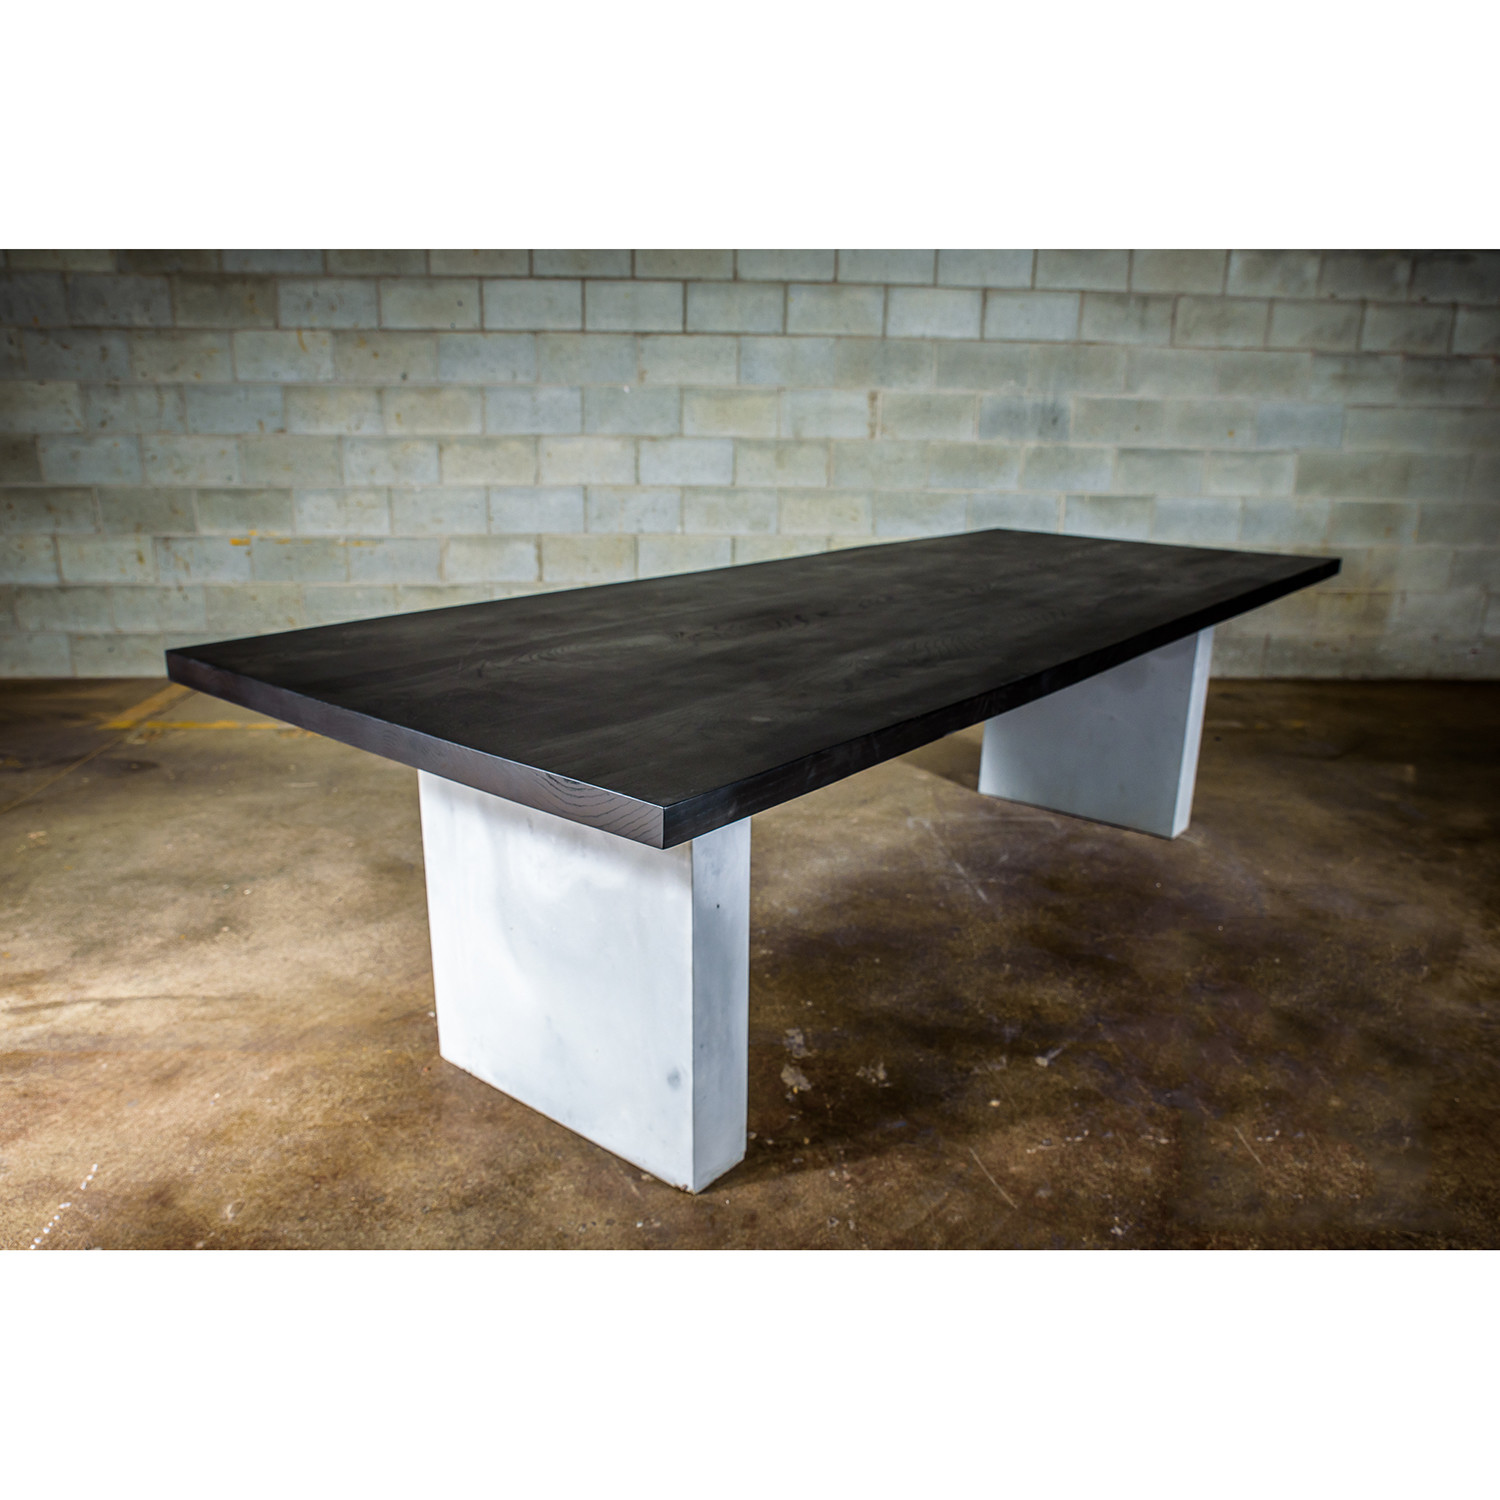 Dining Table Black Stained Ash Wood Concrete Legs 96 L X 38 W X 30 H Bois Design Touch Of Modern